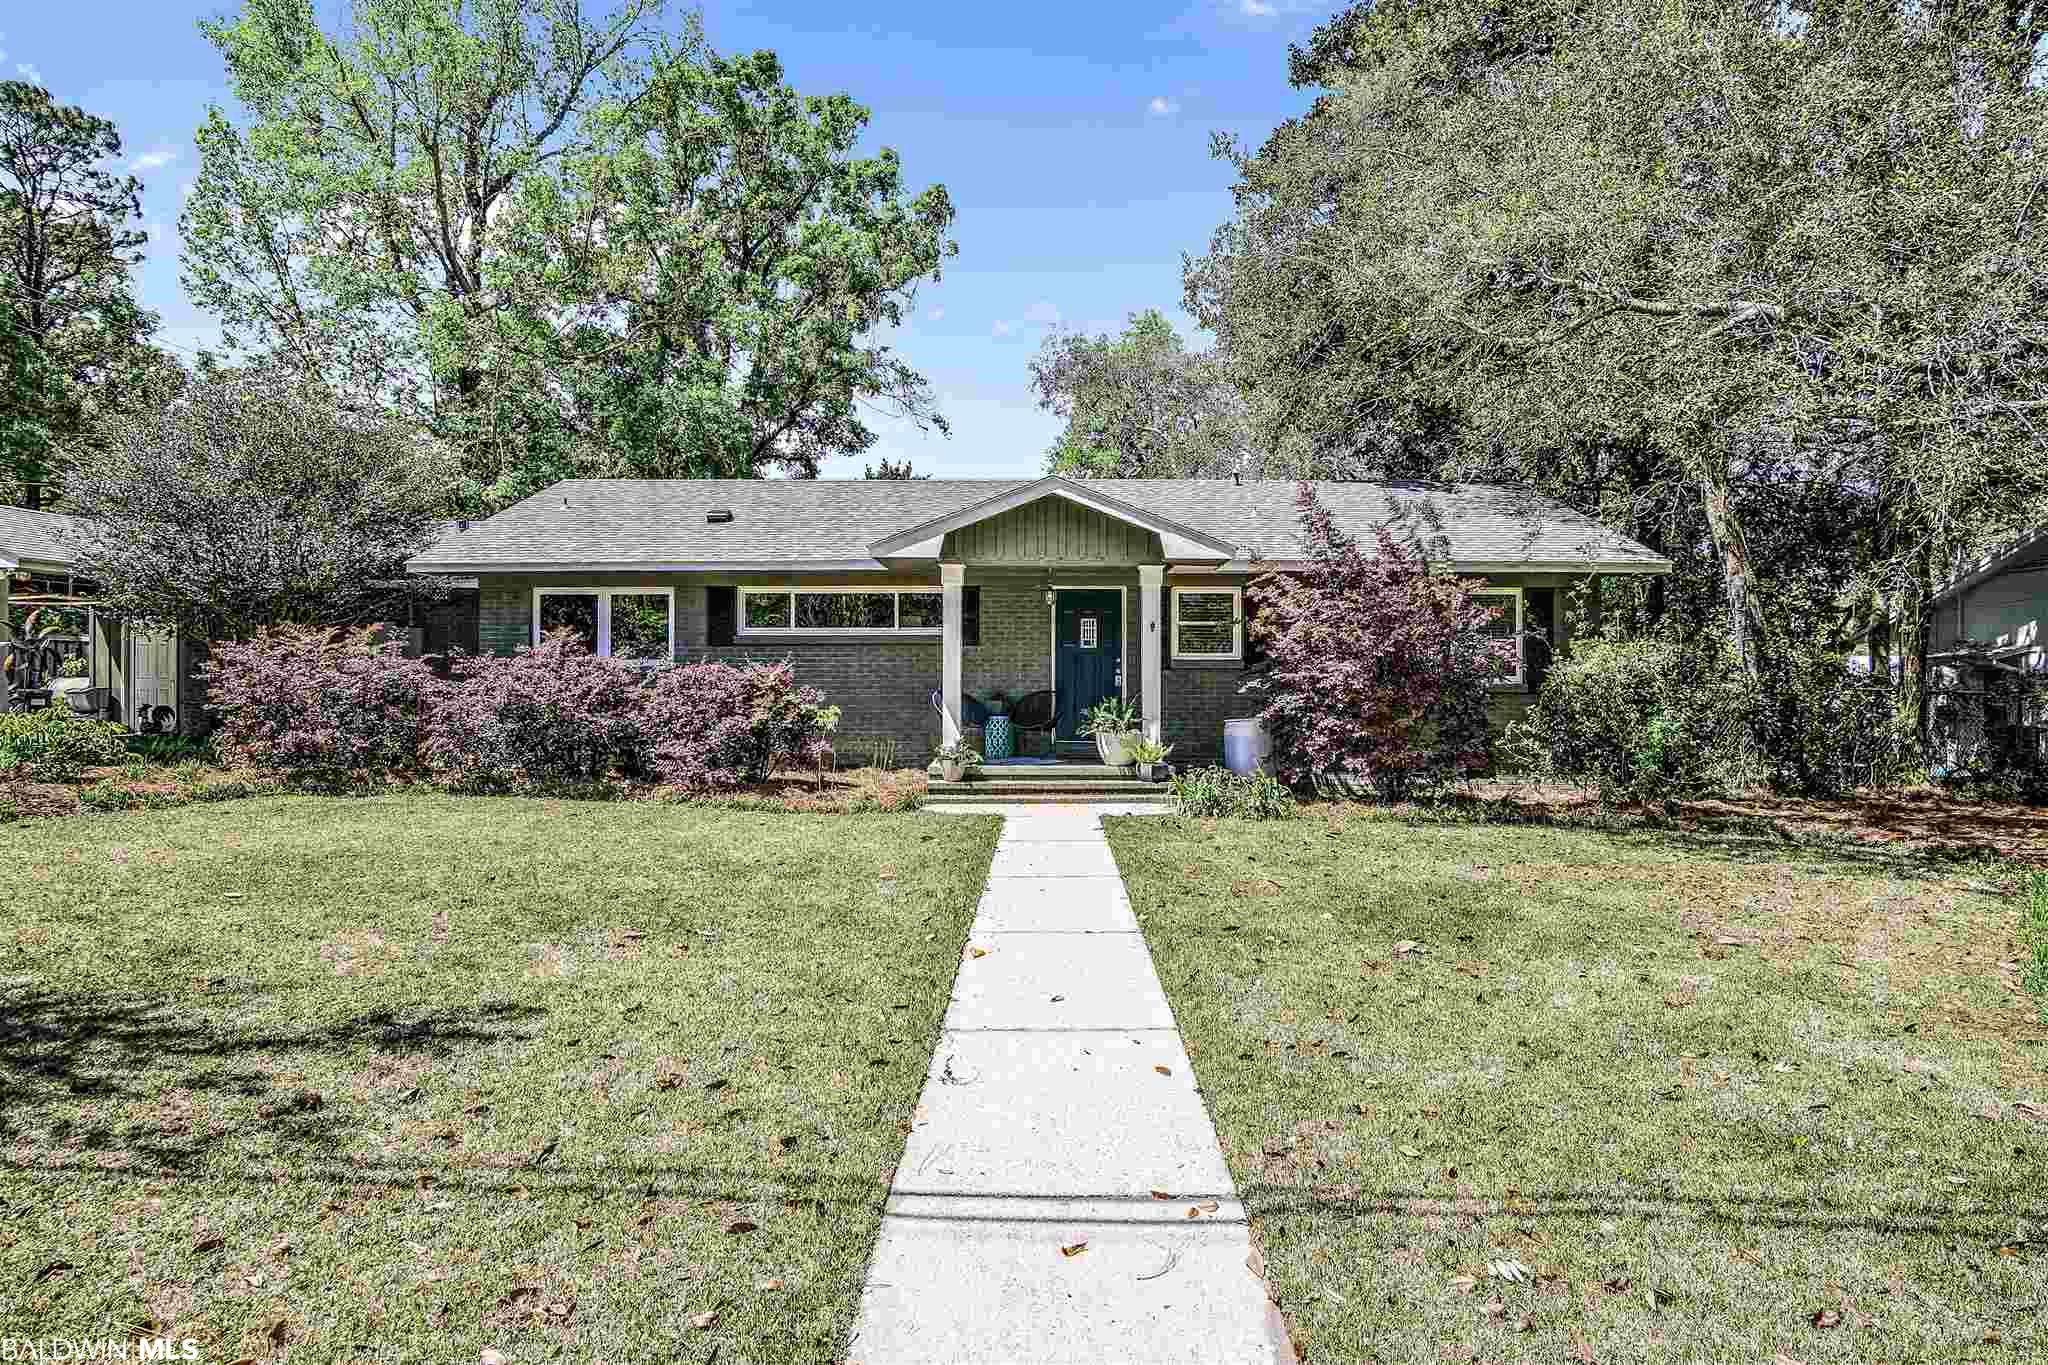 """Looking for Fairhope living? This ranch in the """"Old Fairhope"""" area of town is one you don't want to miss. Being on a cul de sac and near the Jasmine park, this is one of the most convenient locations in town! Brick exterior and a new bronze certified roof anchor this 3 bedroom, 2 bath home. Enjoy a remodeled kitchen by Mike Kerr Construction that is equipped with gas stove, gorgeous farmhouse pedal operated sink and original split brick floors. The large living room and bedrooms are adorned with original hardwood floors. Dining room offers panoramic views of the beautiful, lush backyard. There is an additional room currently used as an office, which could hold many uses. Schedule a visit with your favorite agent today!  Open House Saturday 4/3 1-5:00"""